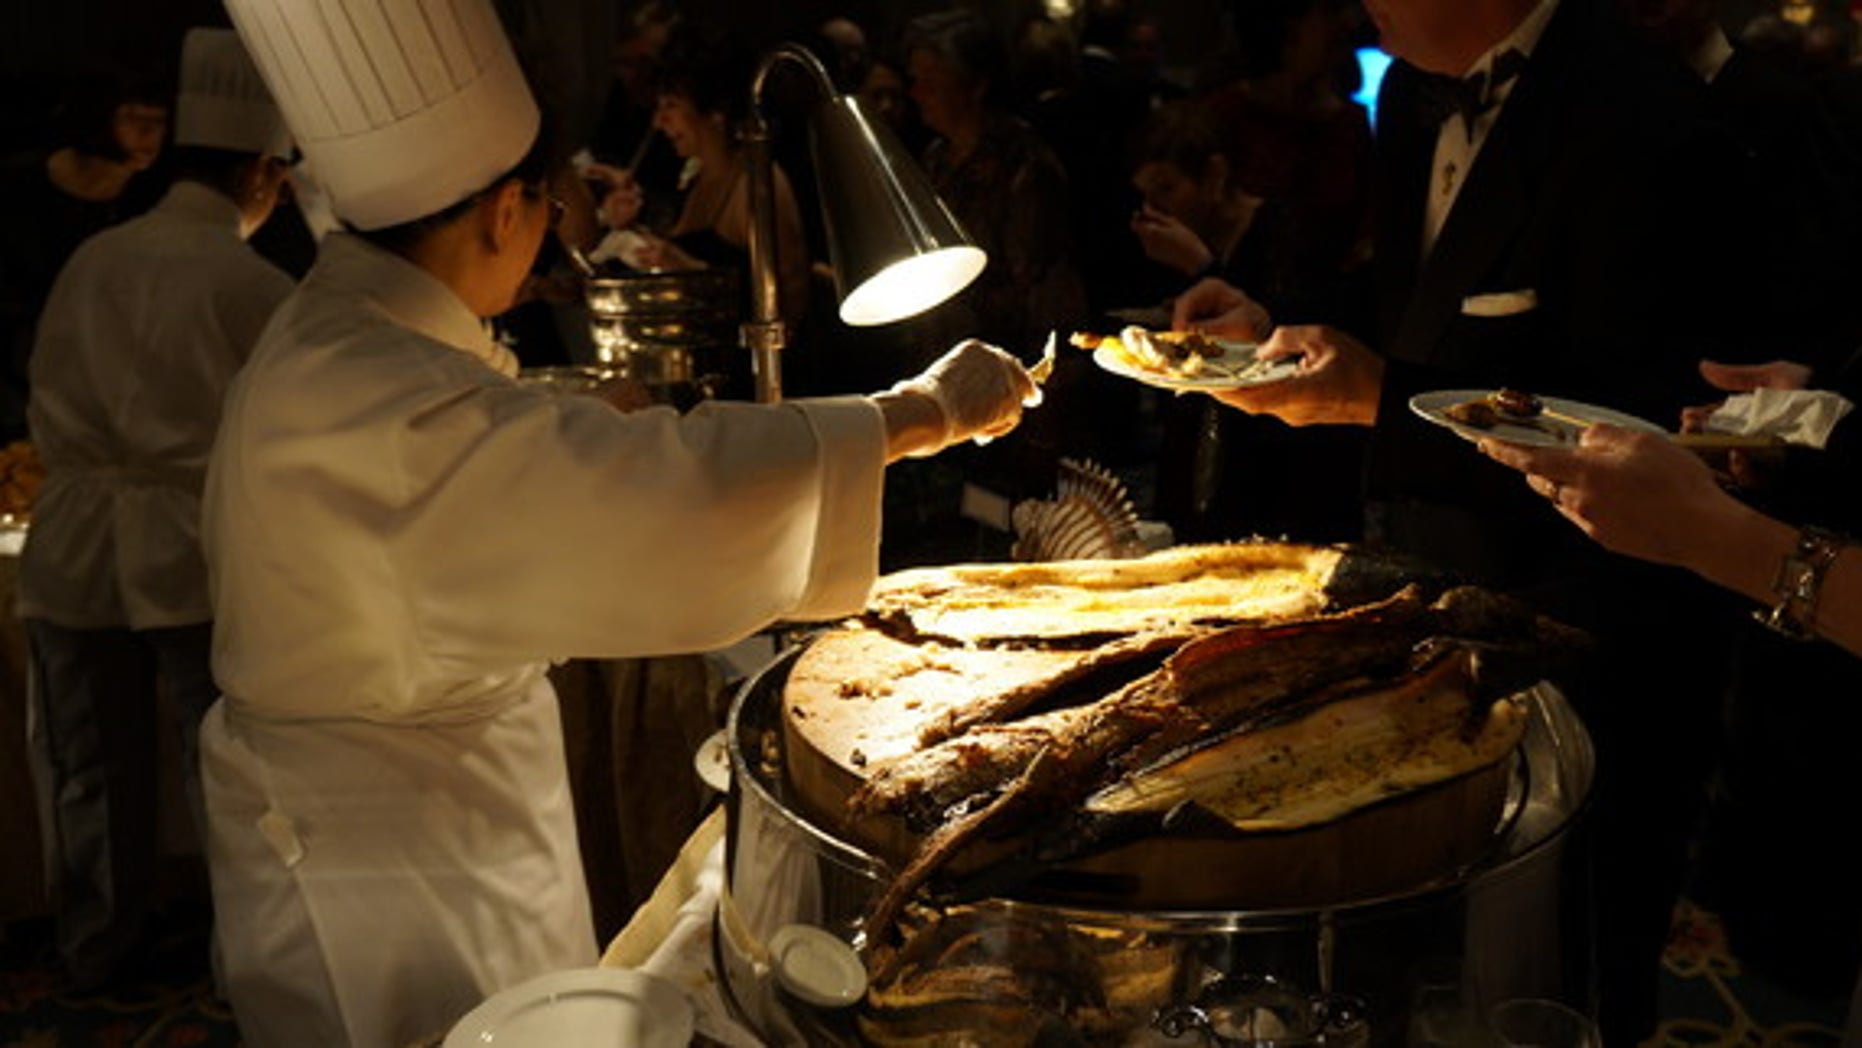 The adventurous hors d'oeuvres have become a staple of the glitzy gala, where astronauts and archaeologists rub shoulders with oceanographers and nature photographers. Shown here, a chef serves snakehead fish.